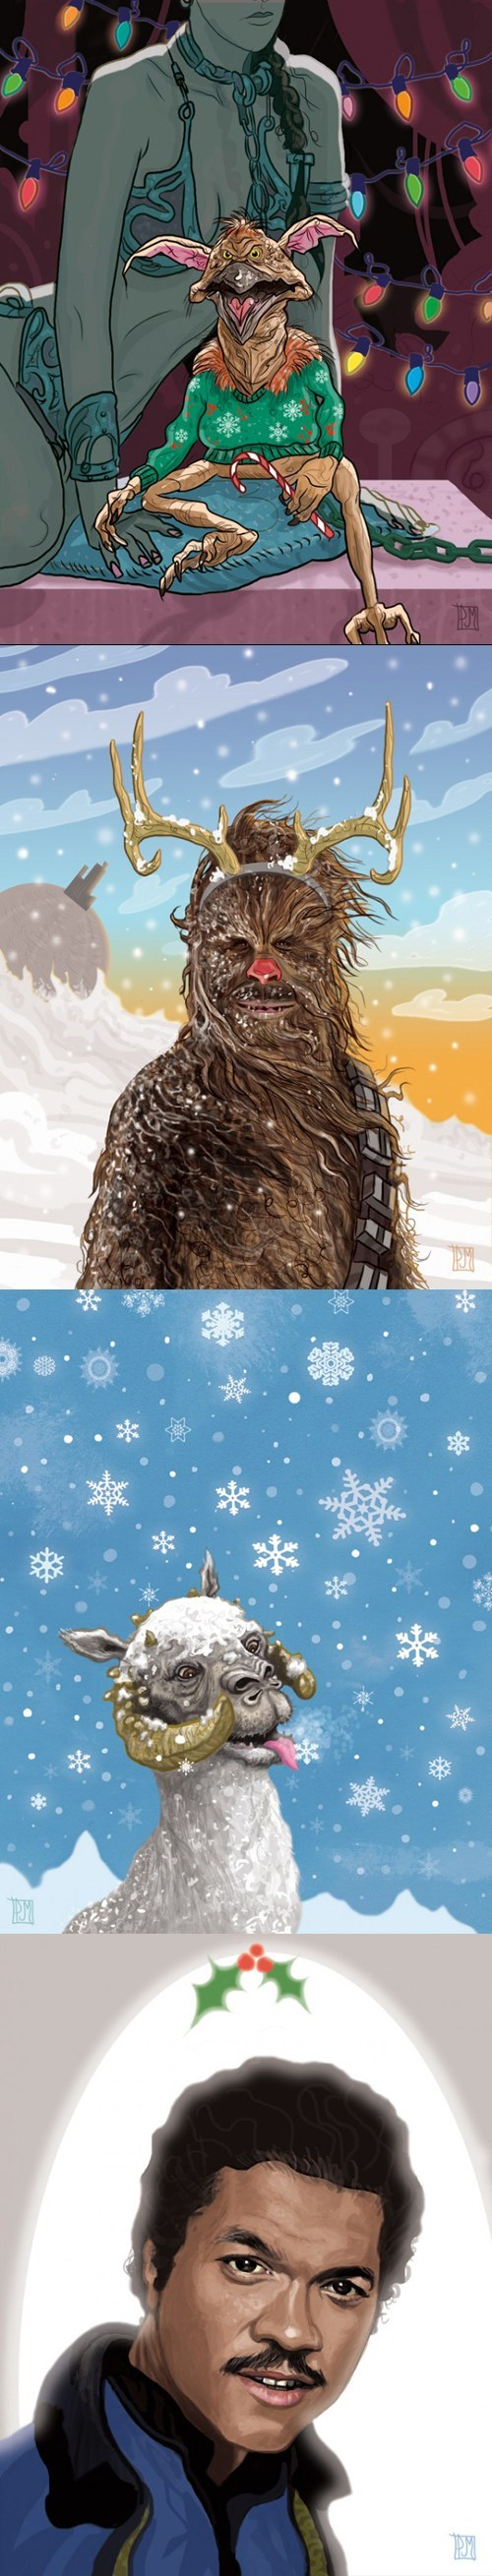 star wars chewbacca Fan Art Lando Calrissian christmas cards Princess Leia - 6878040064